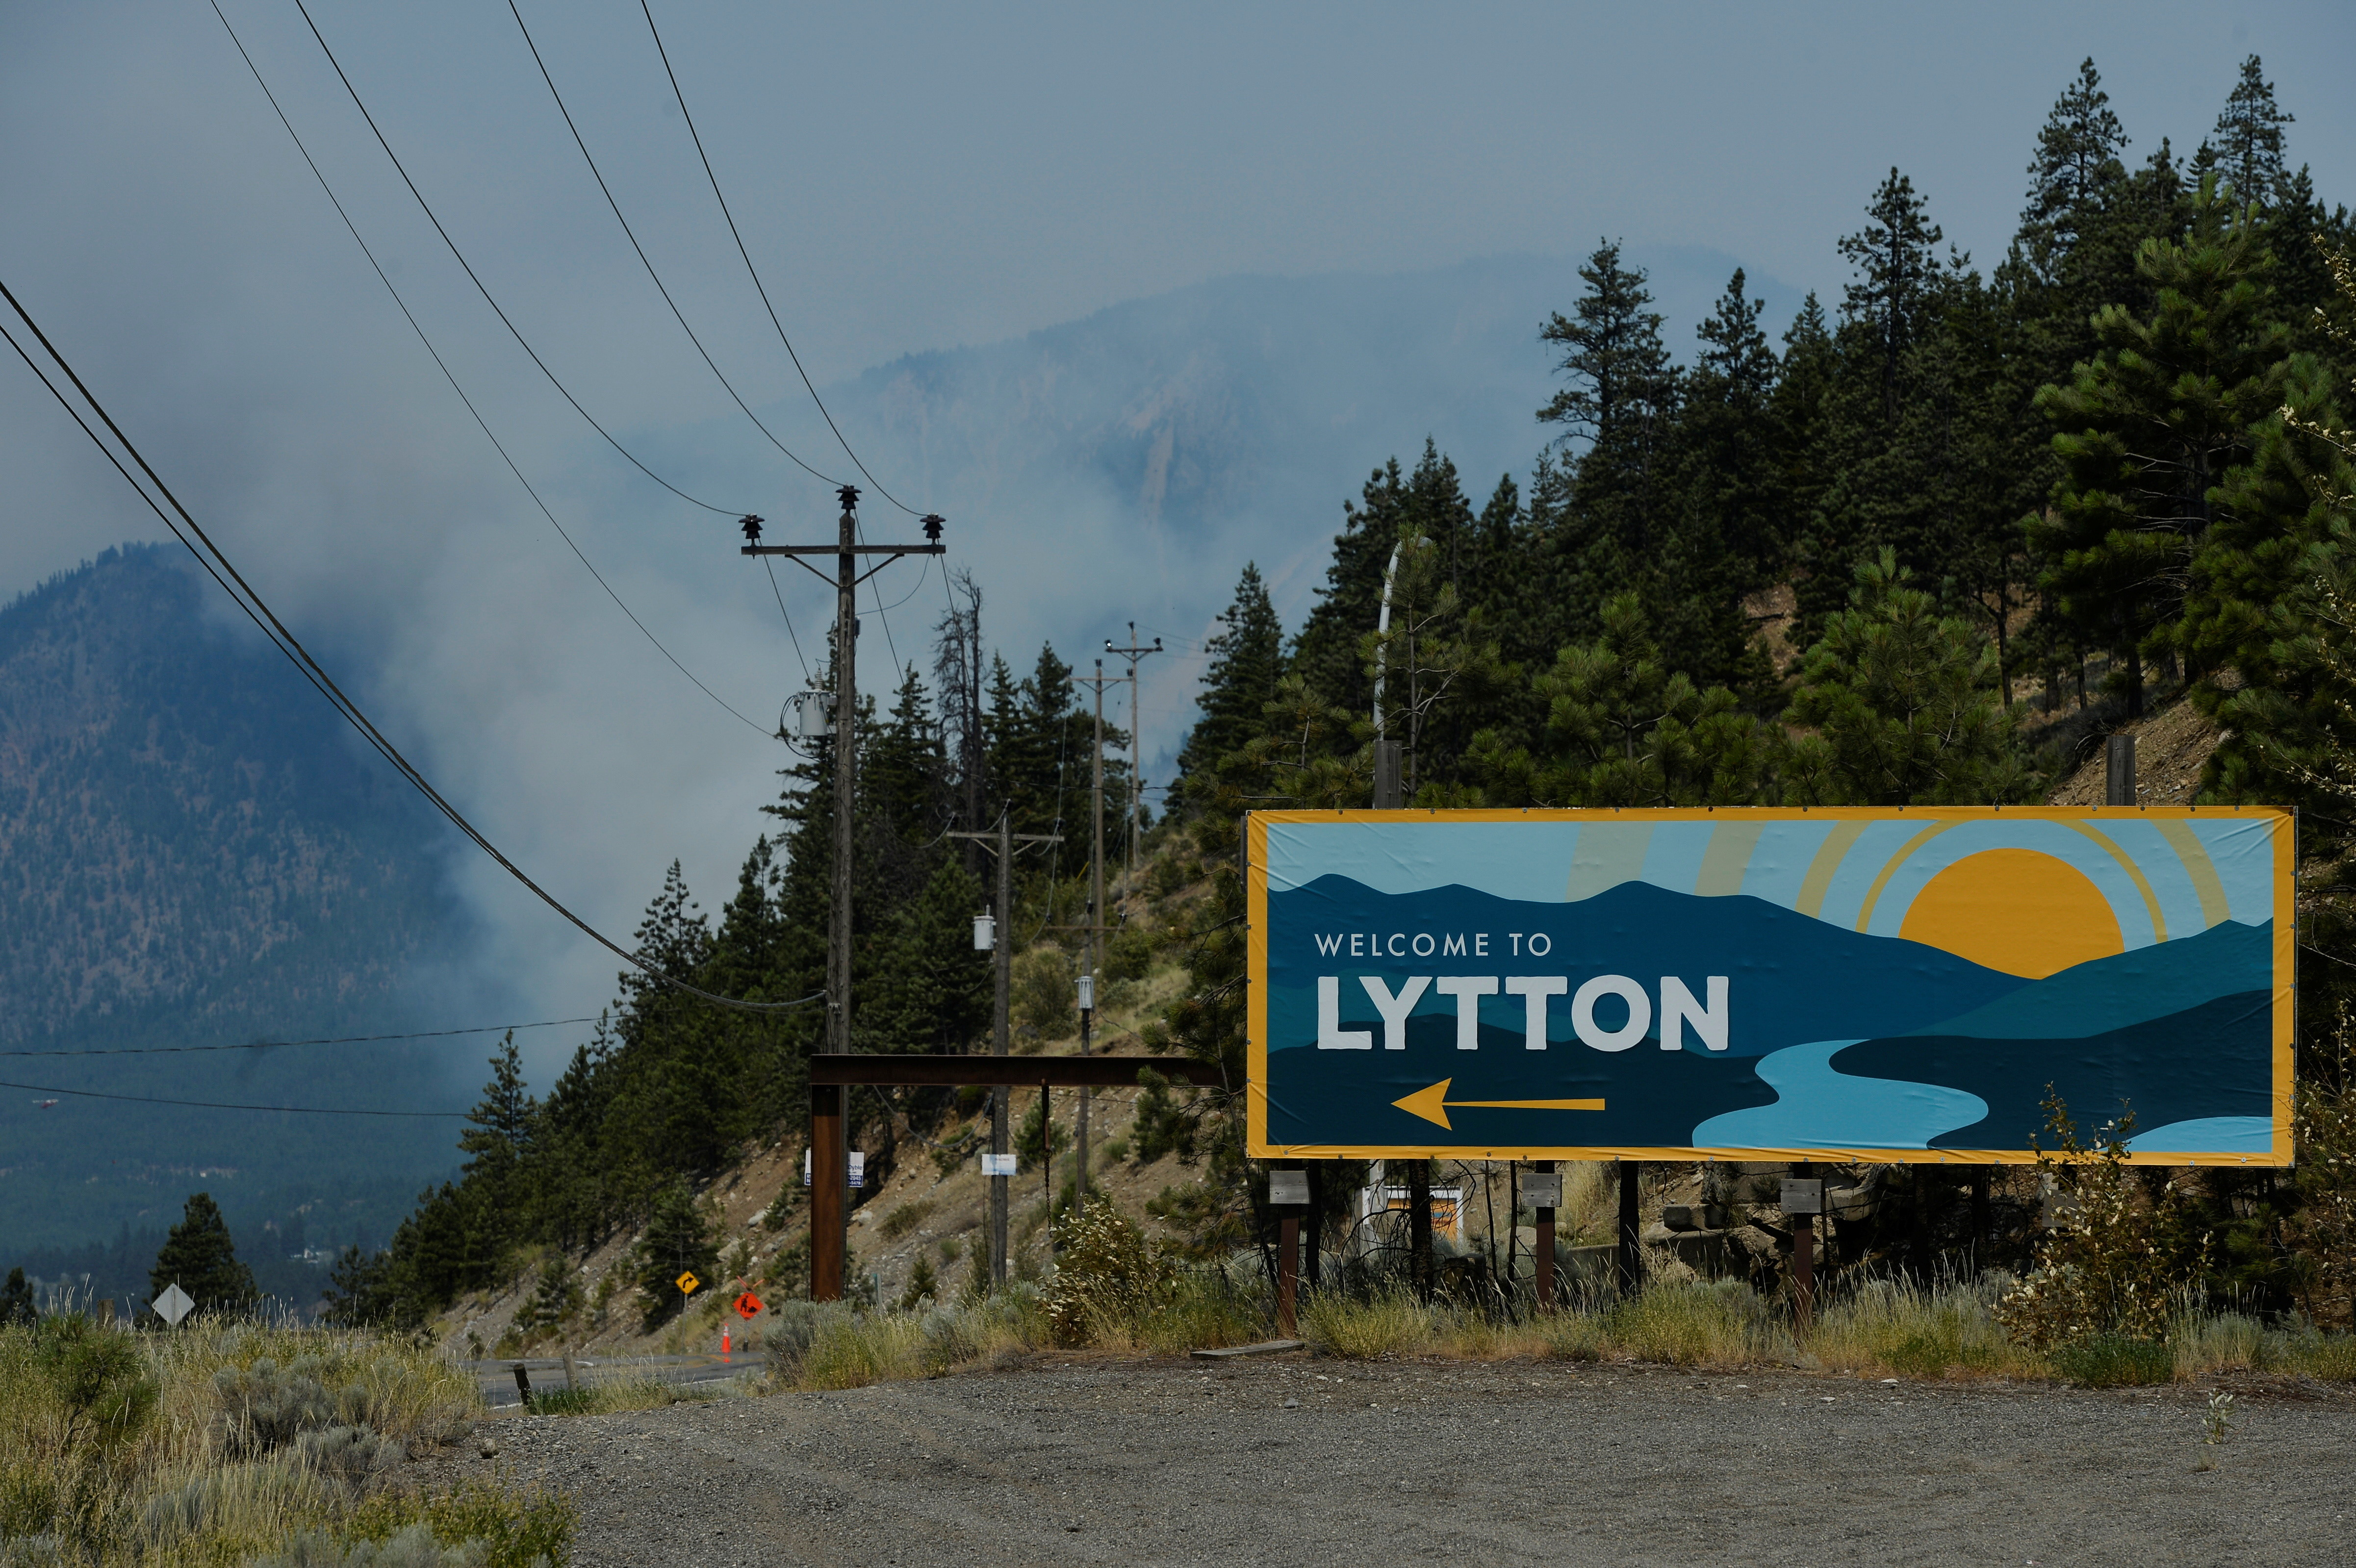 The sign for the town of Lytton, where a wildfire raged through and forced residents to evacuate, is seen in Lytton, British Columbia, Canada July 1, 2021.  REUTERS/Jennifer Gauthier - RC2PBO9GJ2NE